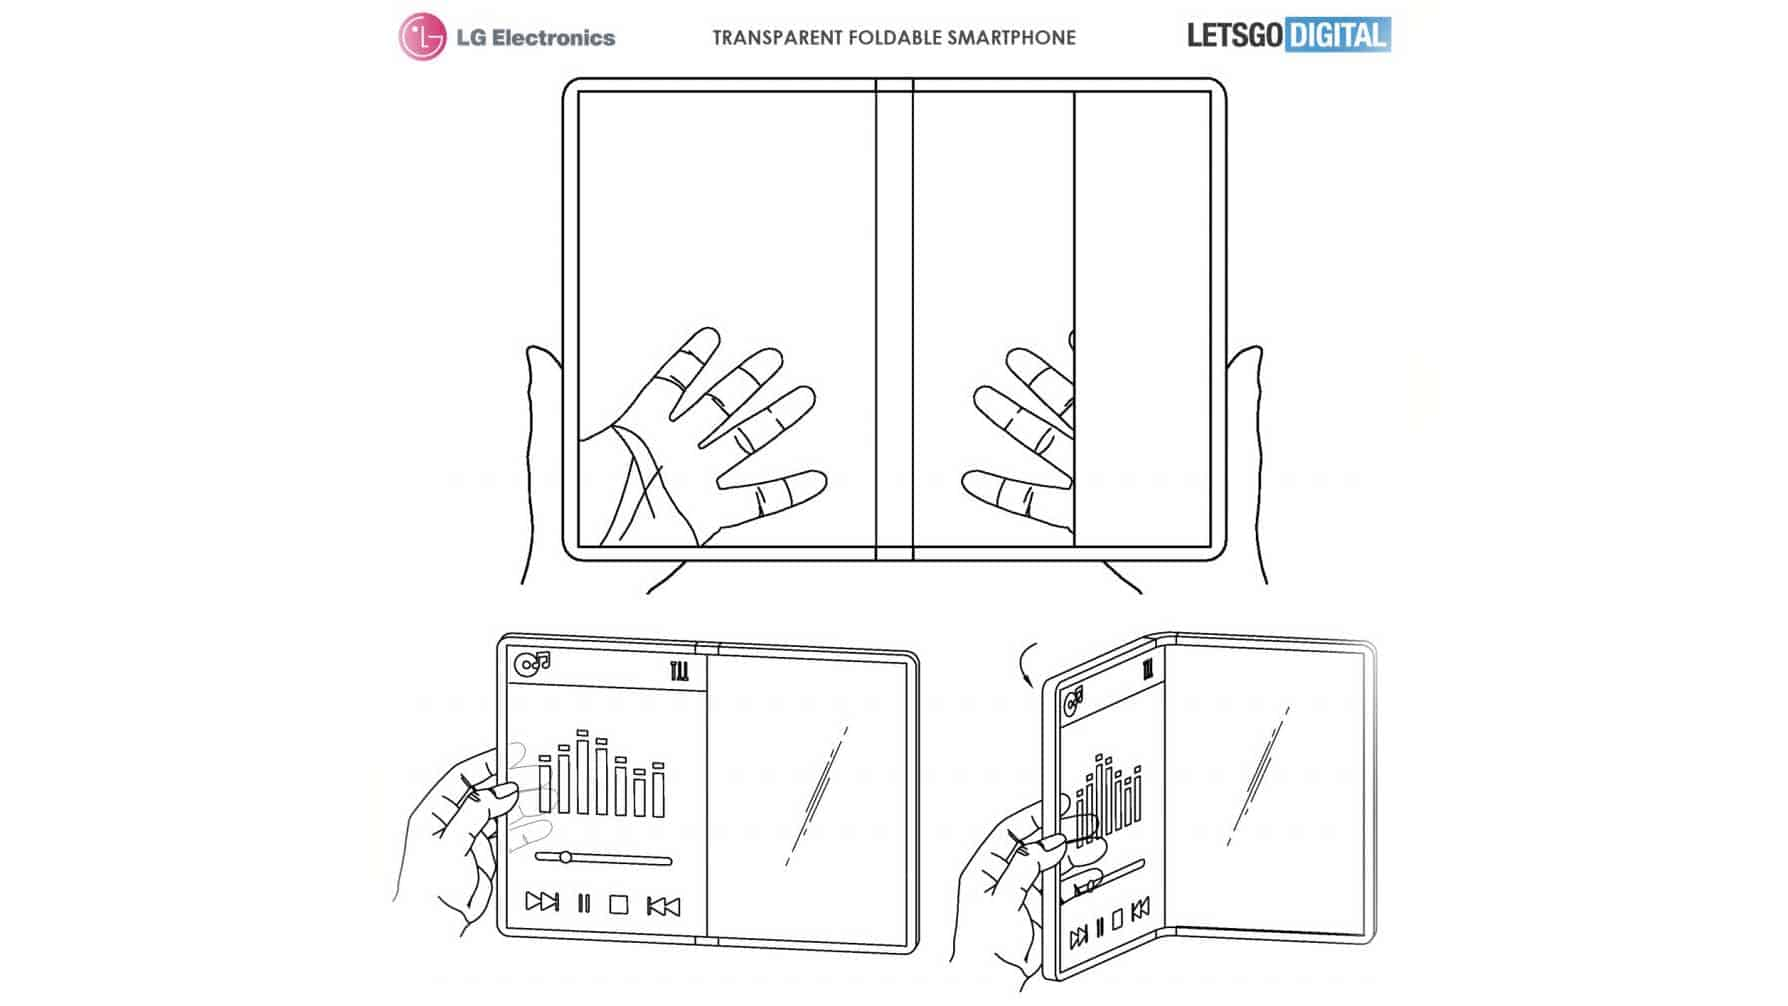 LG Considers Folding Tony Stark's Transparent Smartphone